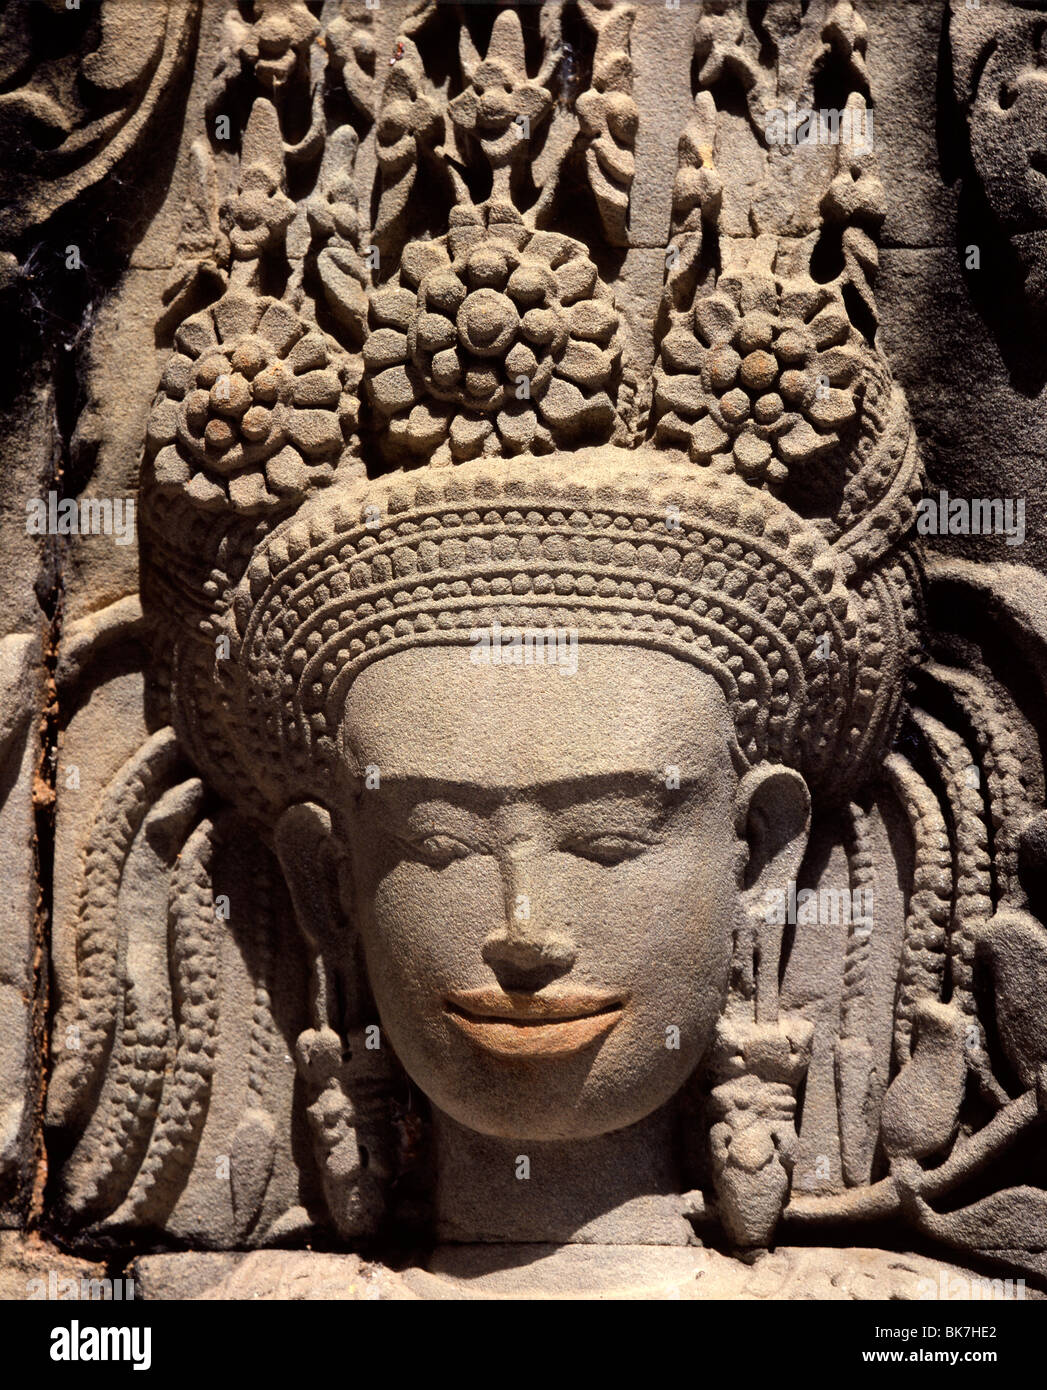 Detail of sculpture dating from the early 12th century, Thommanon, Angkor, UNESCO World Heritage Site, Cambodia - Stock Image